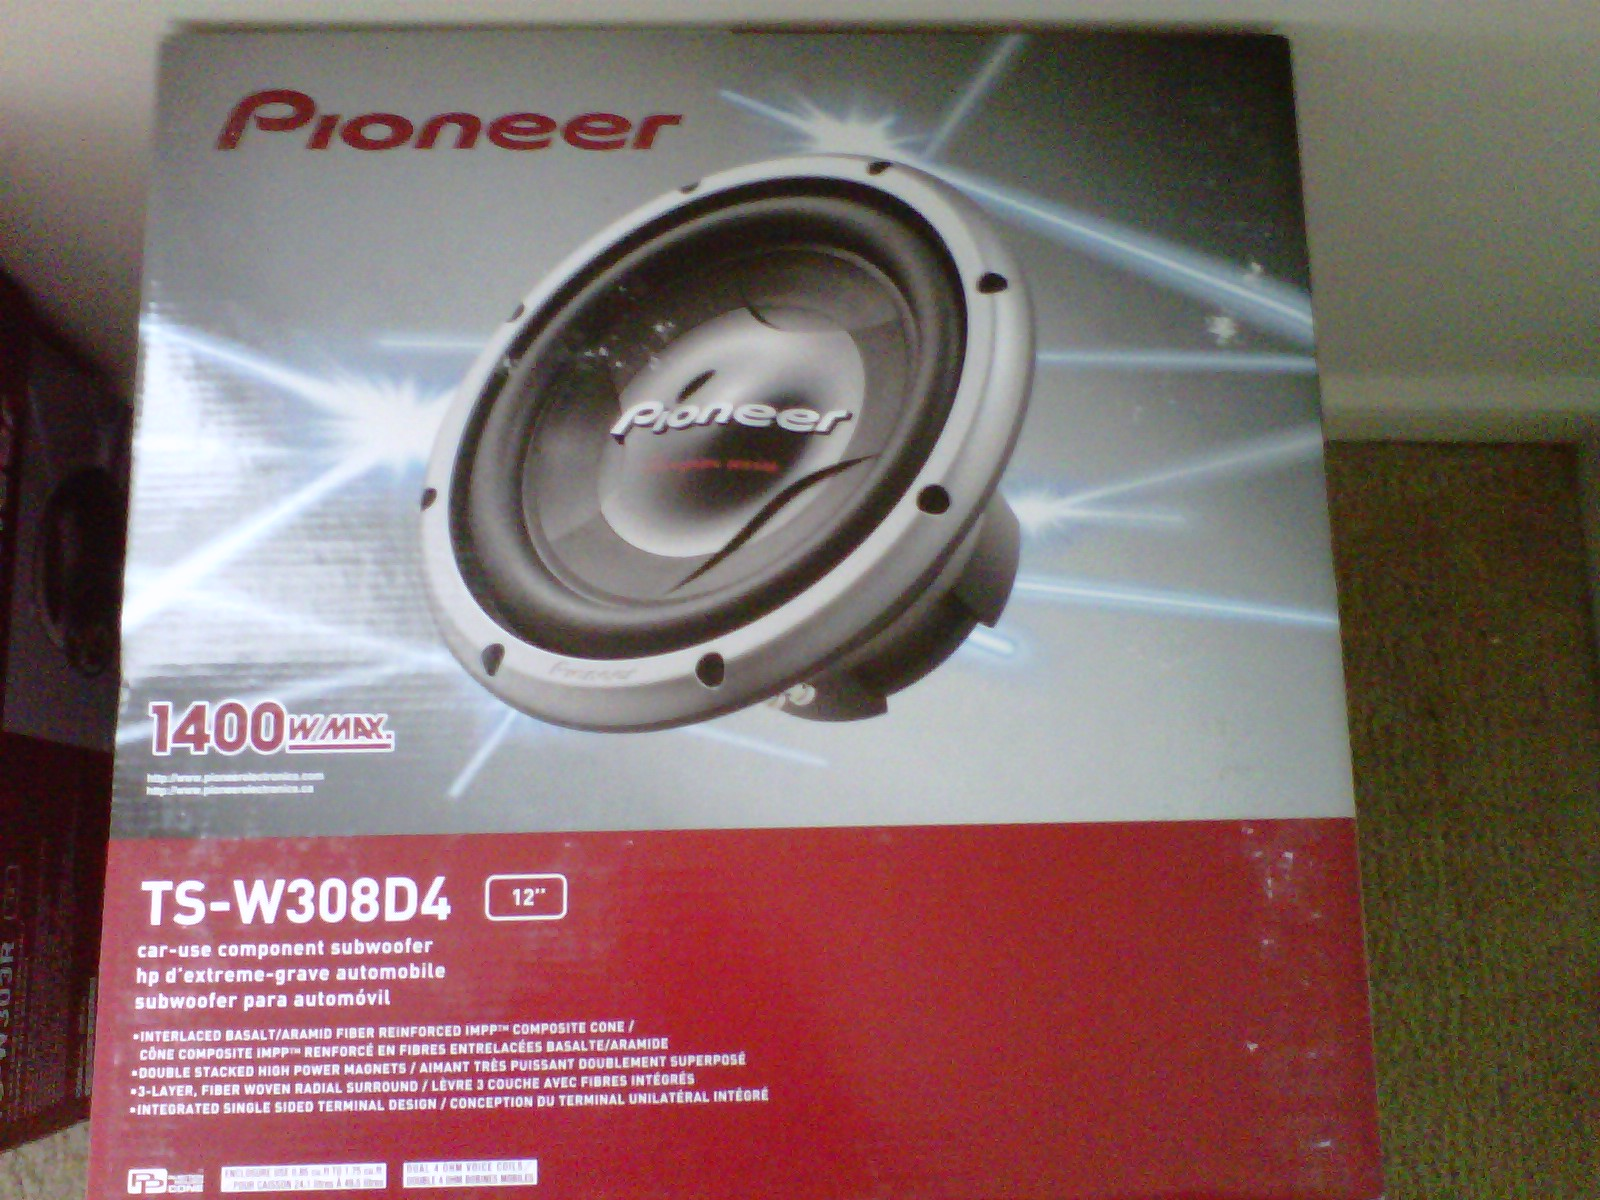 Pioneer TSW310D12-Inch Champion Series Subwoofer with Dual